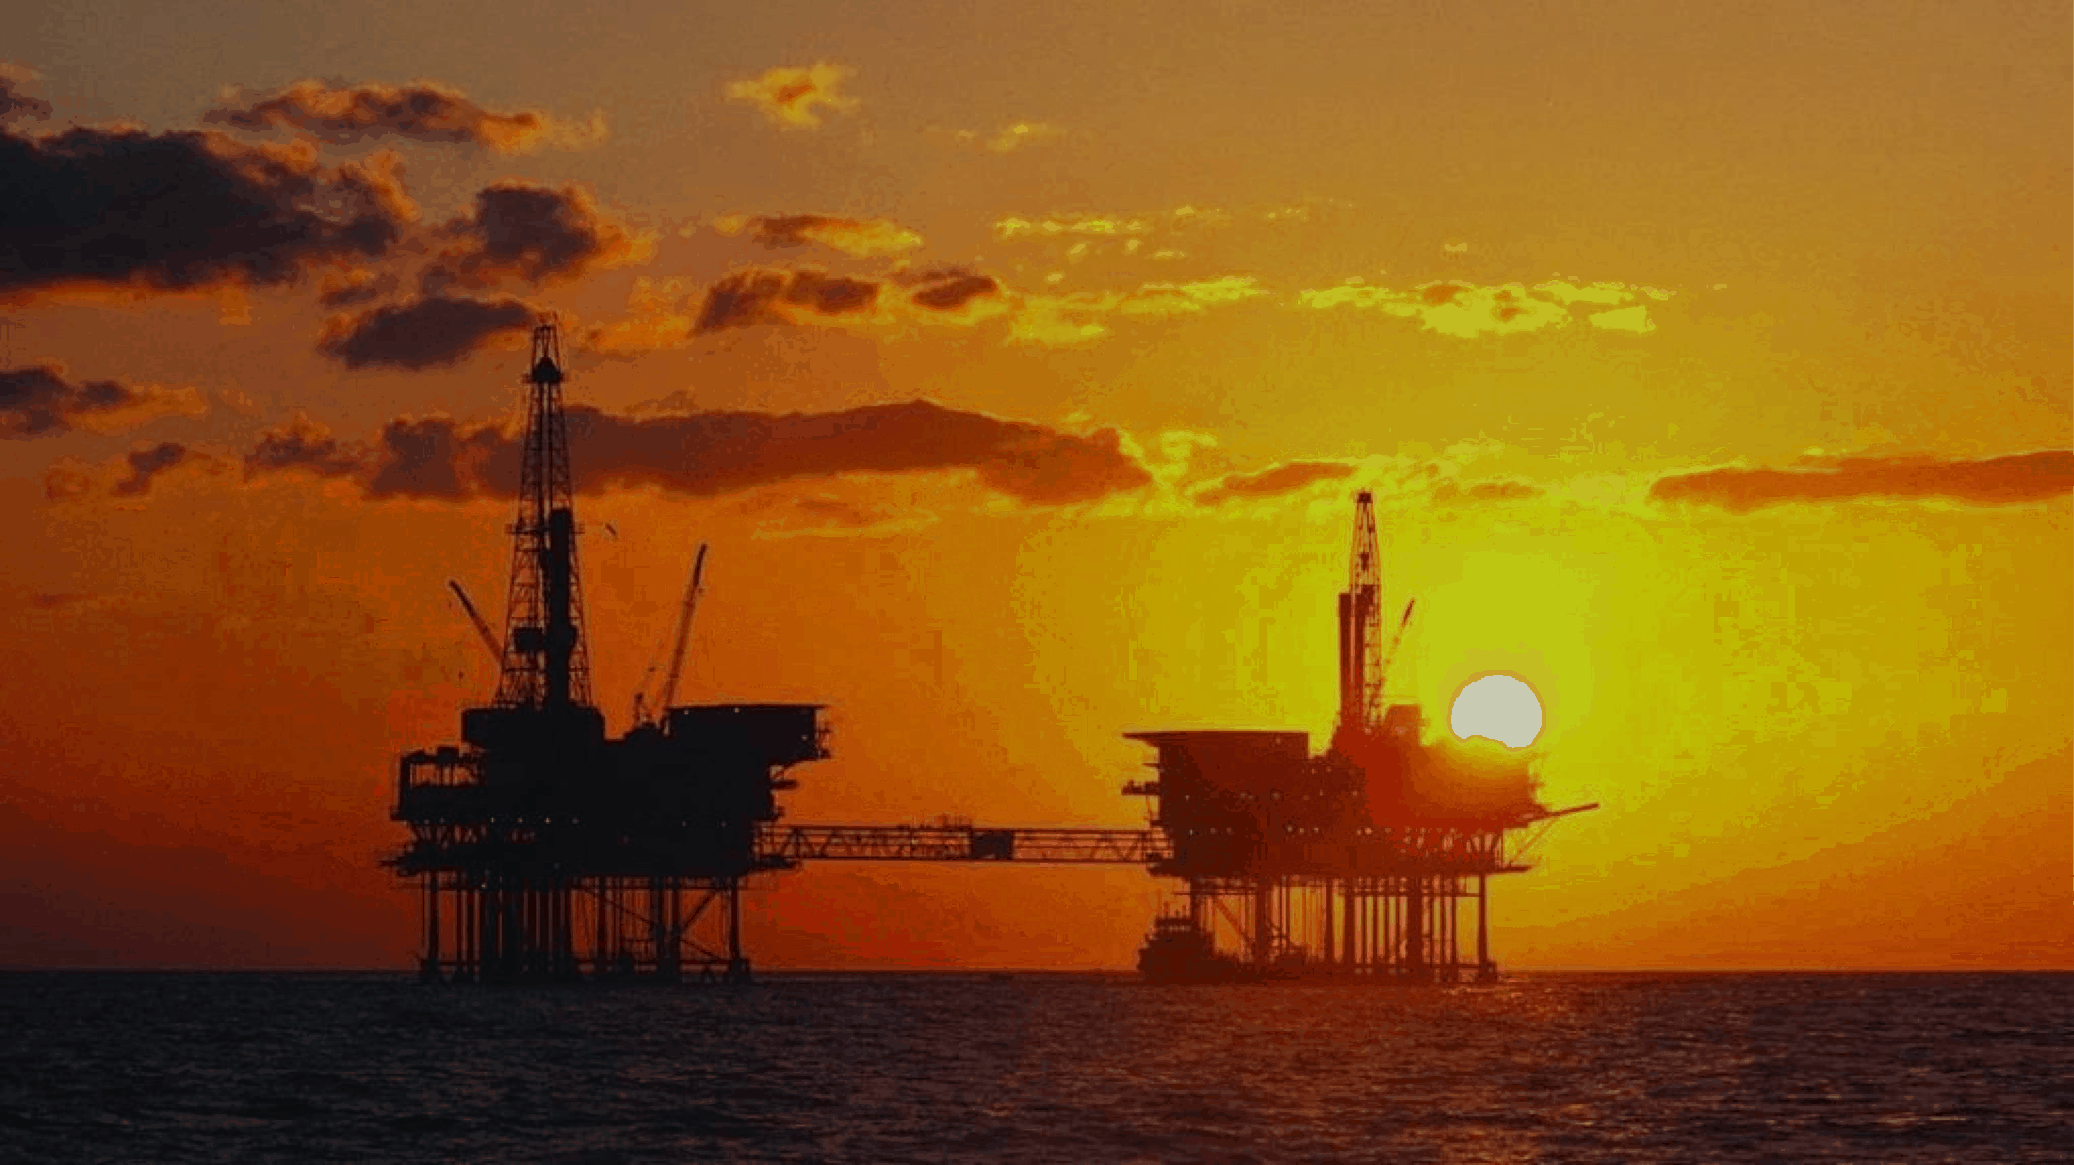 Shifting investment from oil and gas